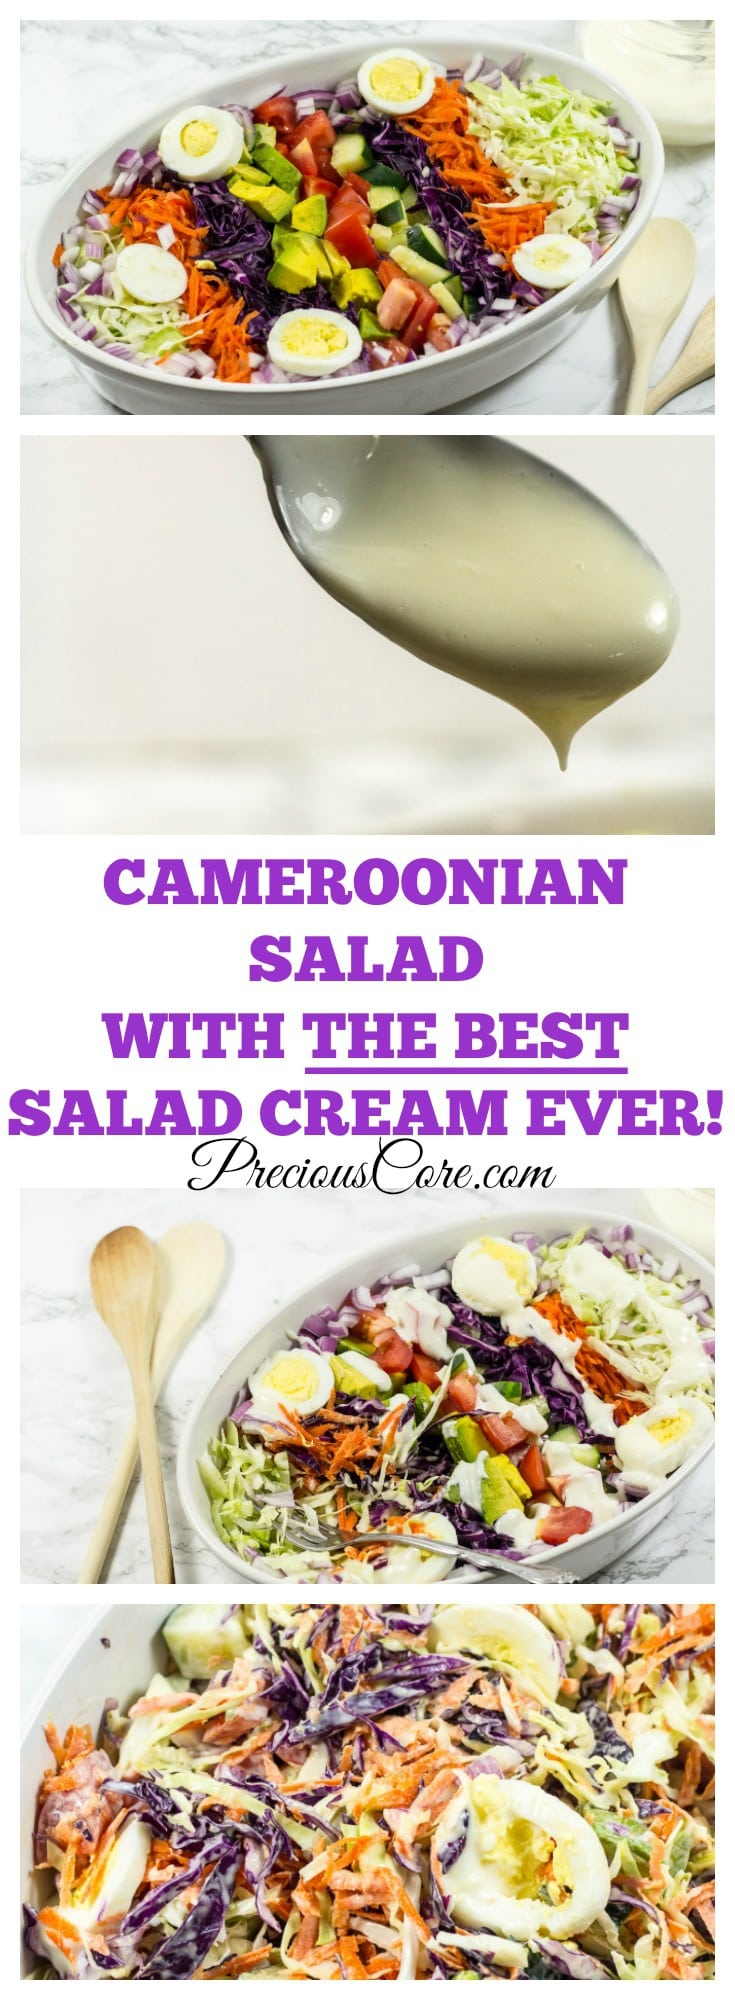 The best Cameroonian salad